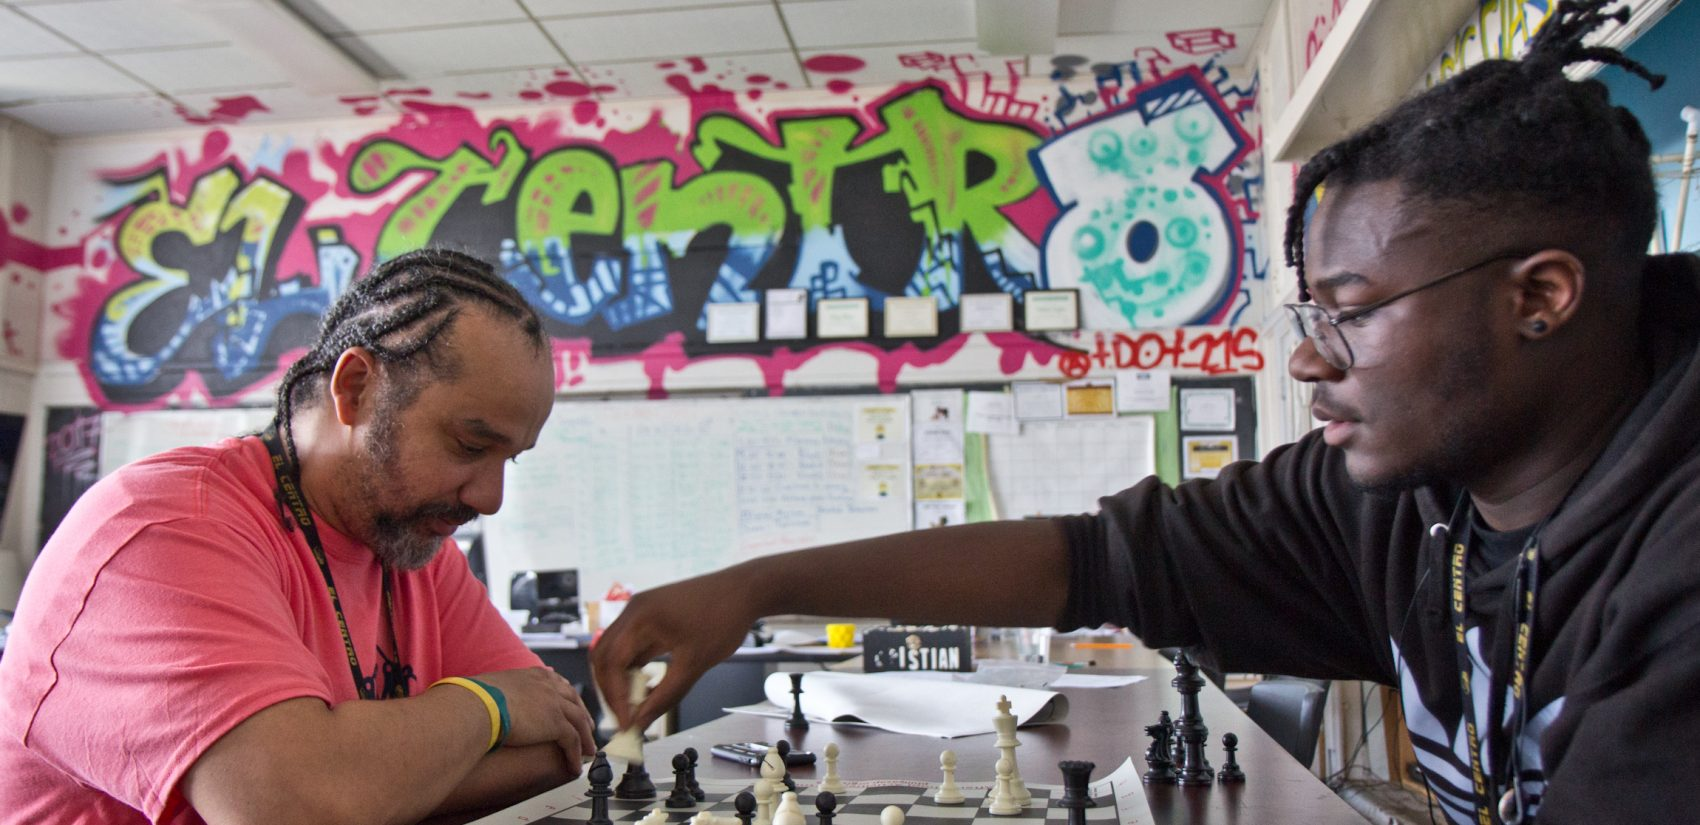 Doug Cox (left) teaches mathematics and engineering at El Centro. He also leads the Dark Knights chess club. (Kimberly Paynter/Keystone Crossroads)